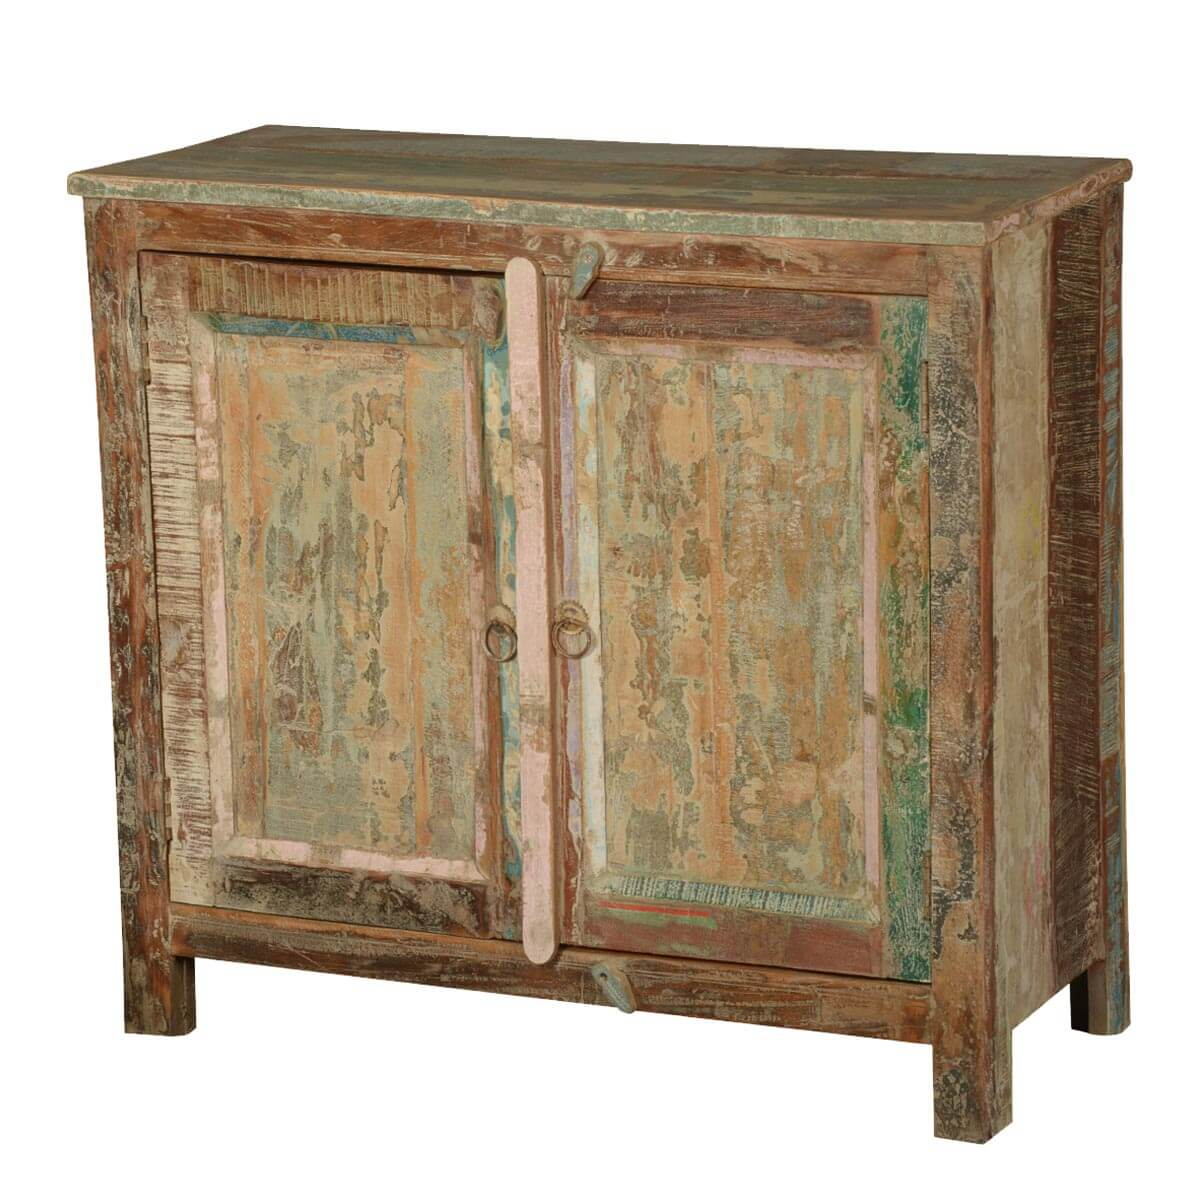 Frontier Rustic Reclaimed Wood Distressed Console Cabinet